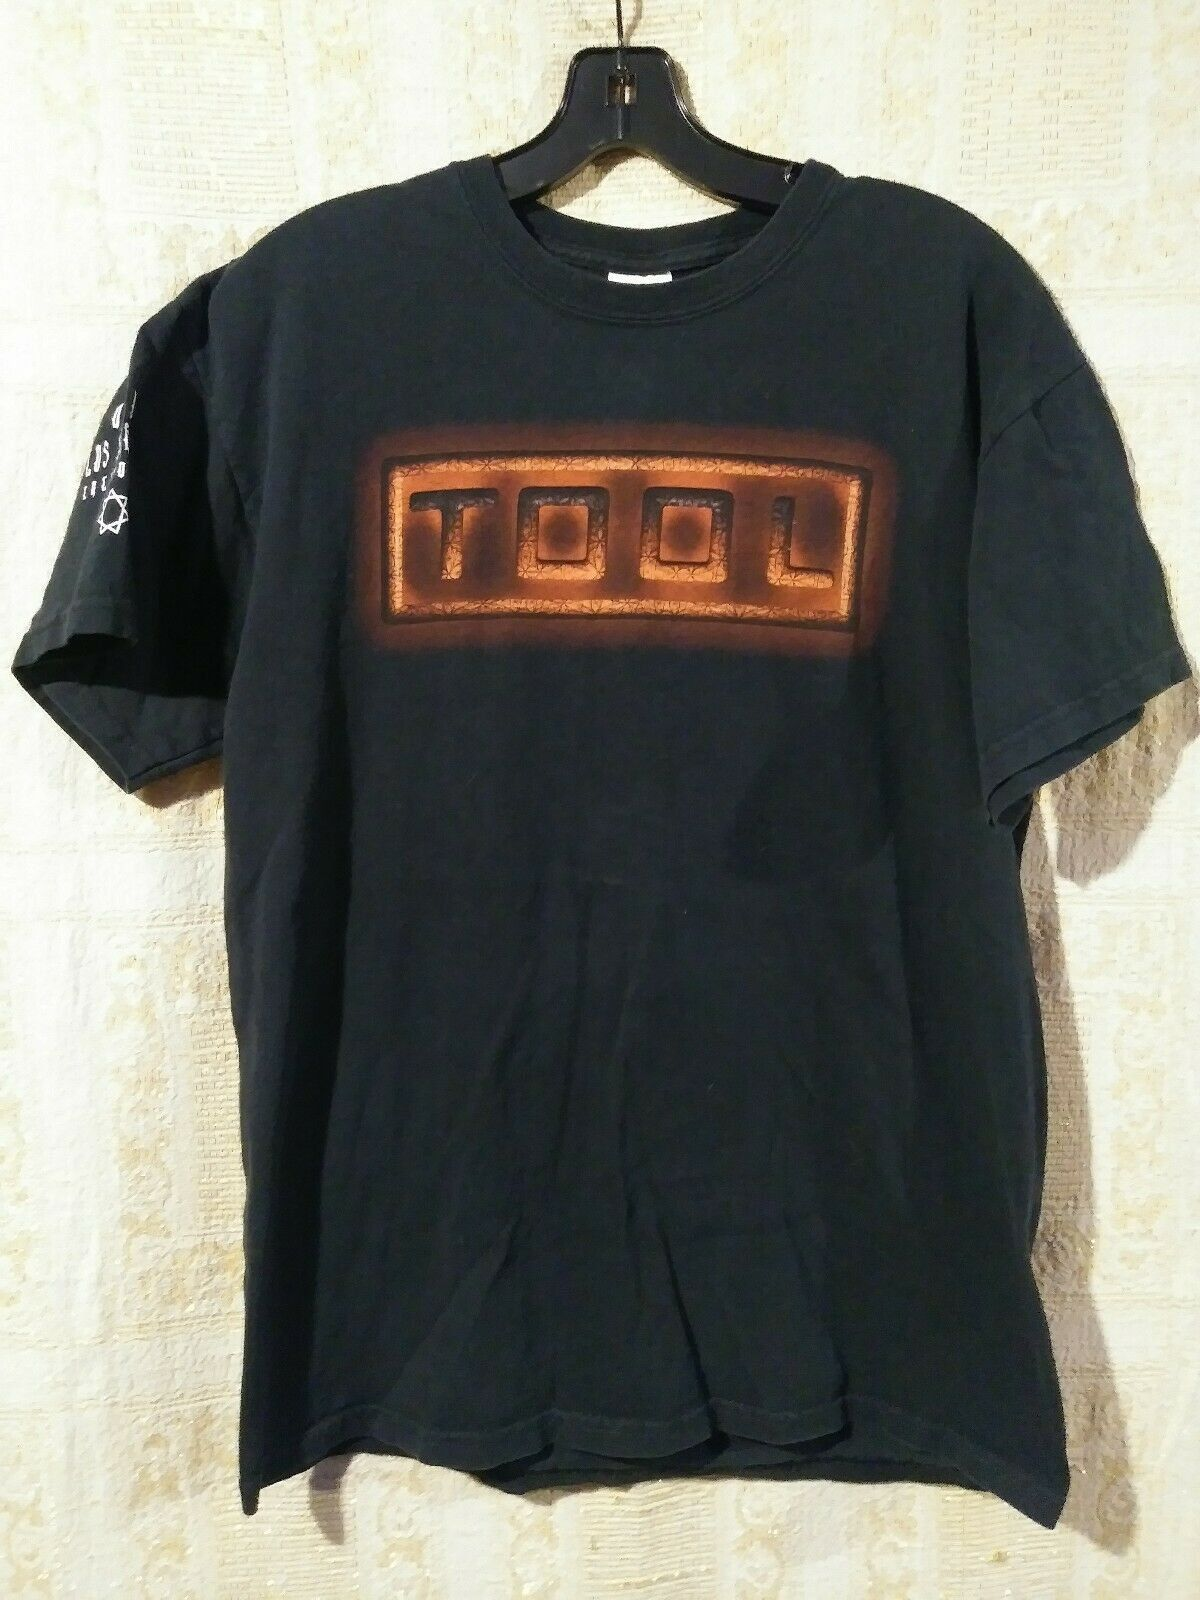 vtg TOOL Los Angeles California Concert TOUR T-shirt M Rare 2 side Distressed by ClothHoss on Etsy..#clothhoss #etsy #vintageshop #oldstuff #best #rare #awesome #rock #metal #black #music #alternative #goth #emo #punk #grunge #t-shirt #clothing #clothes #maynard #losangeles #california #concert #tour #oroboros #snake #vintageclothing   #bestoftheday #countryconcertoutfit